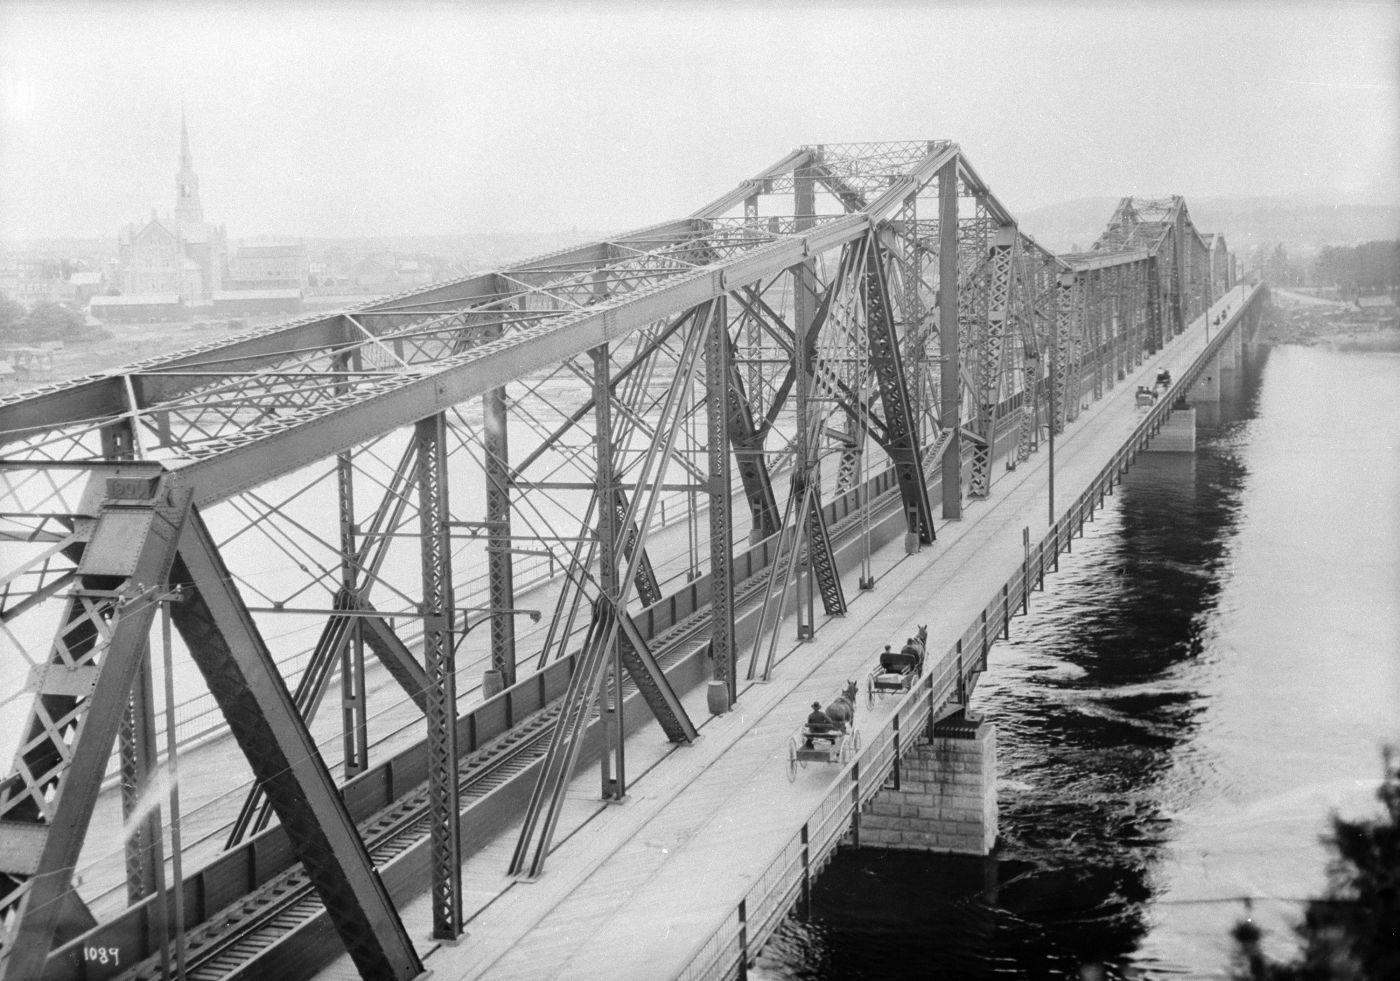 Black and white photograph of a steel trellis bridge overlooking a river. Viewed from one end of the bridge, horse-drawn buggies head towards the opposite bank where there is a church.